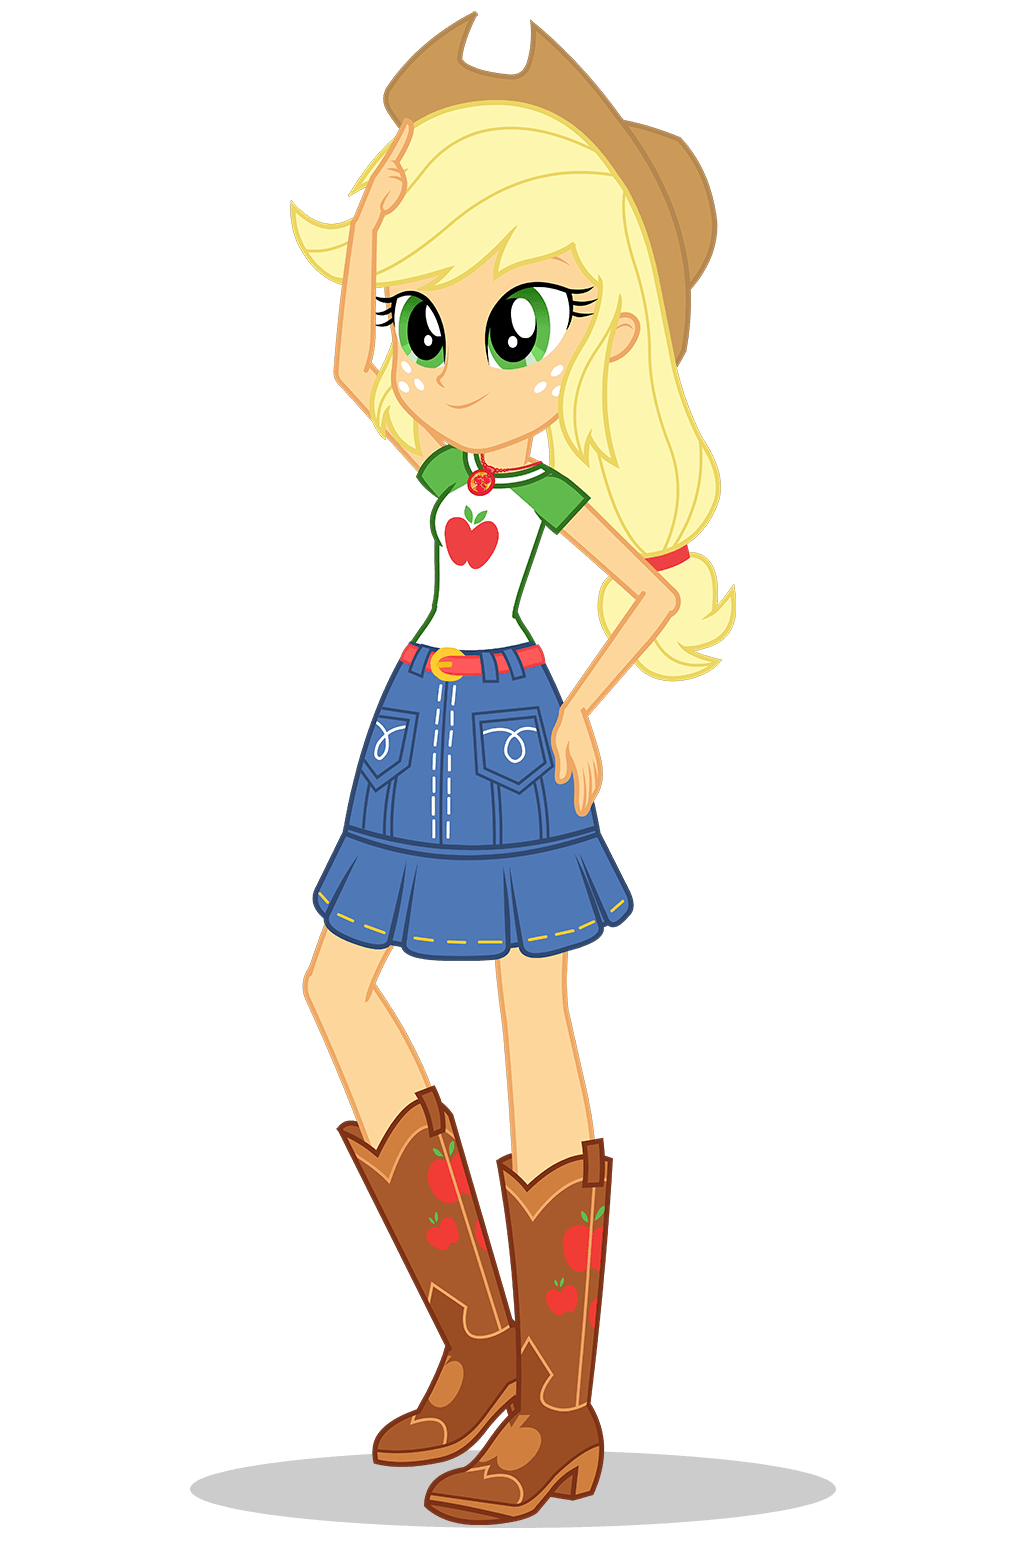 Applejack (EG) | Heroes Wiki | FANDOM powered by Wikia